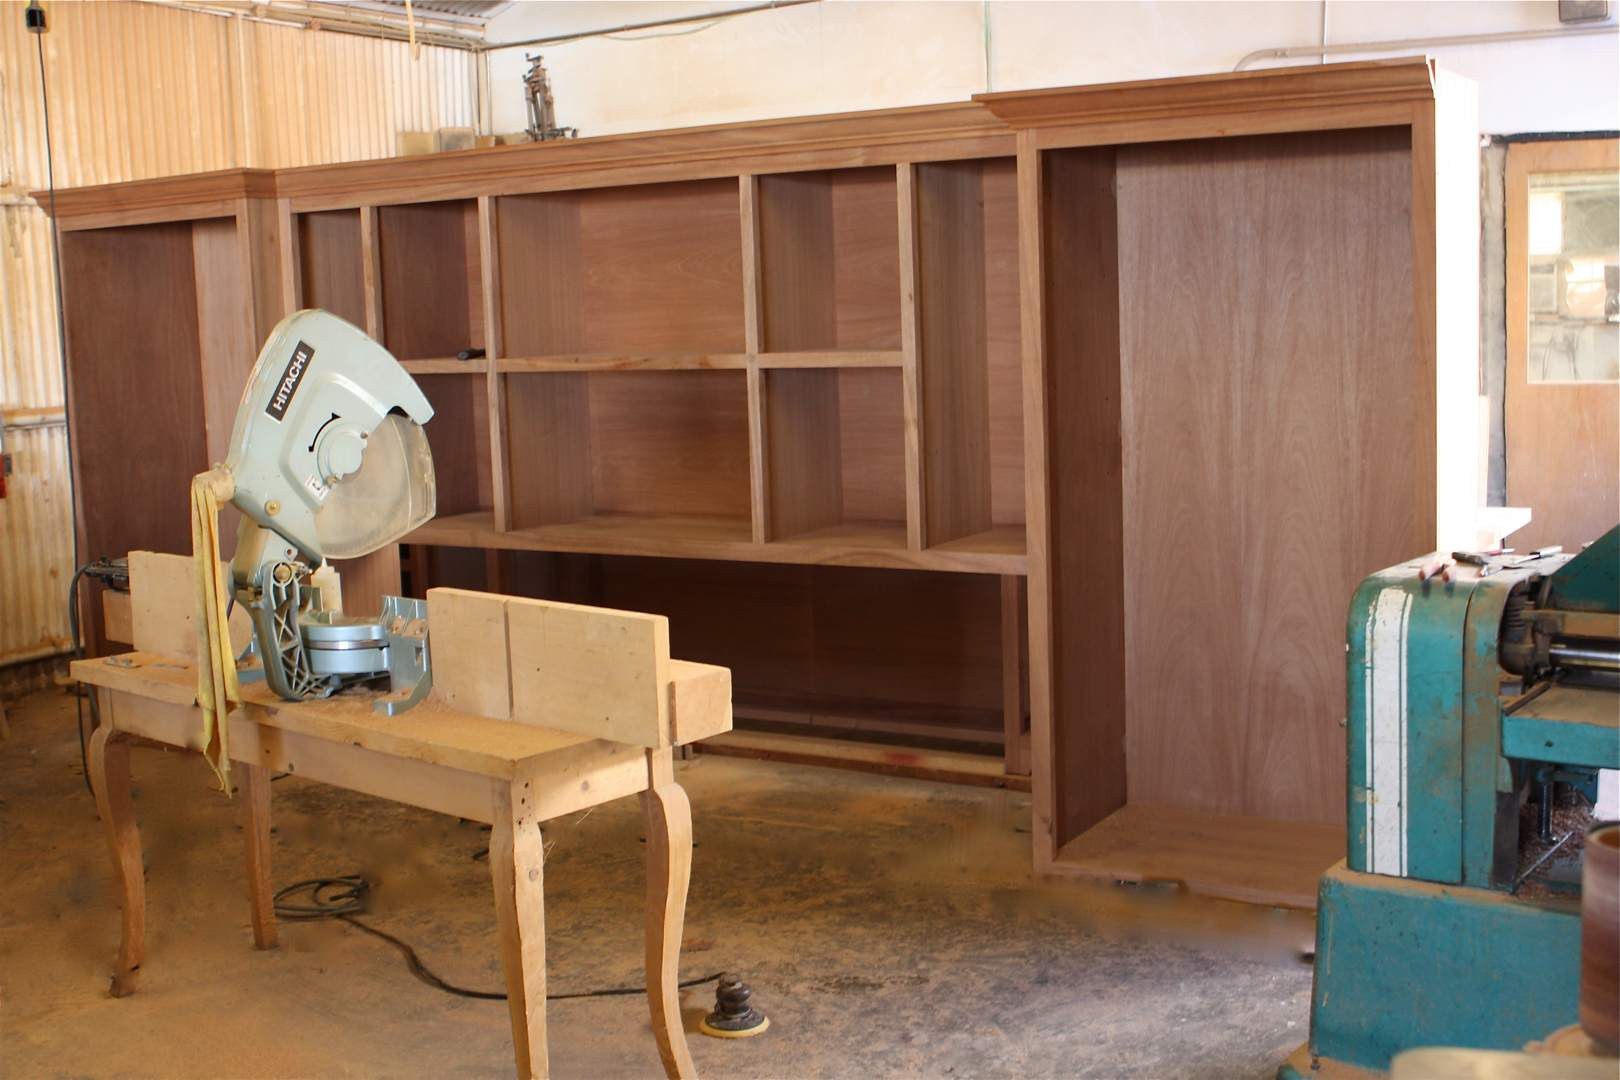 design busy a cabinetry cabinet always from valley at the today is we suite home office ability work world custom plus to category can in s offices build cabinets